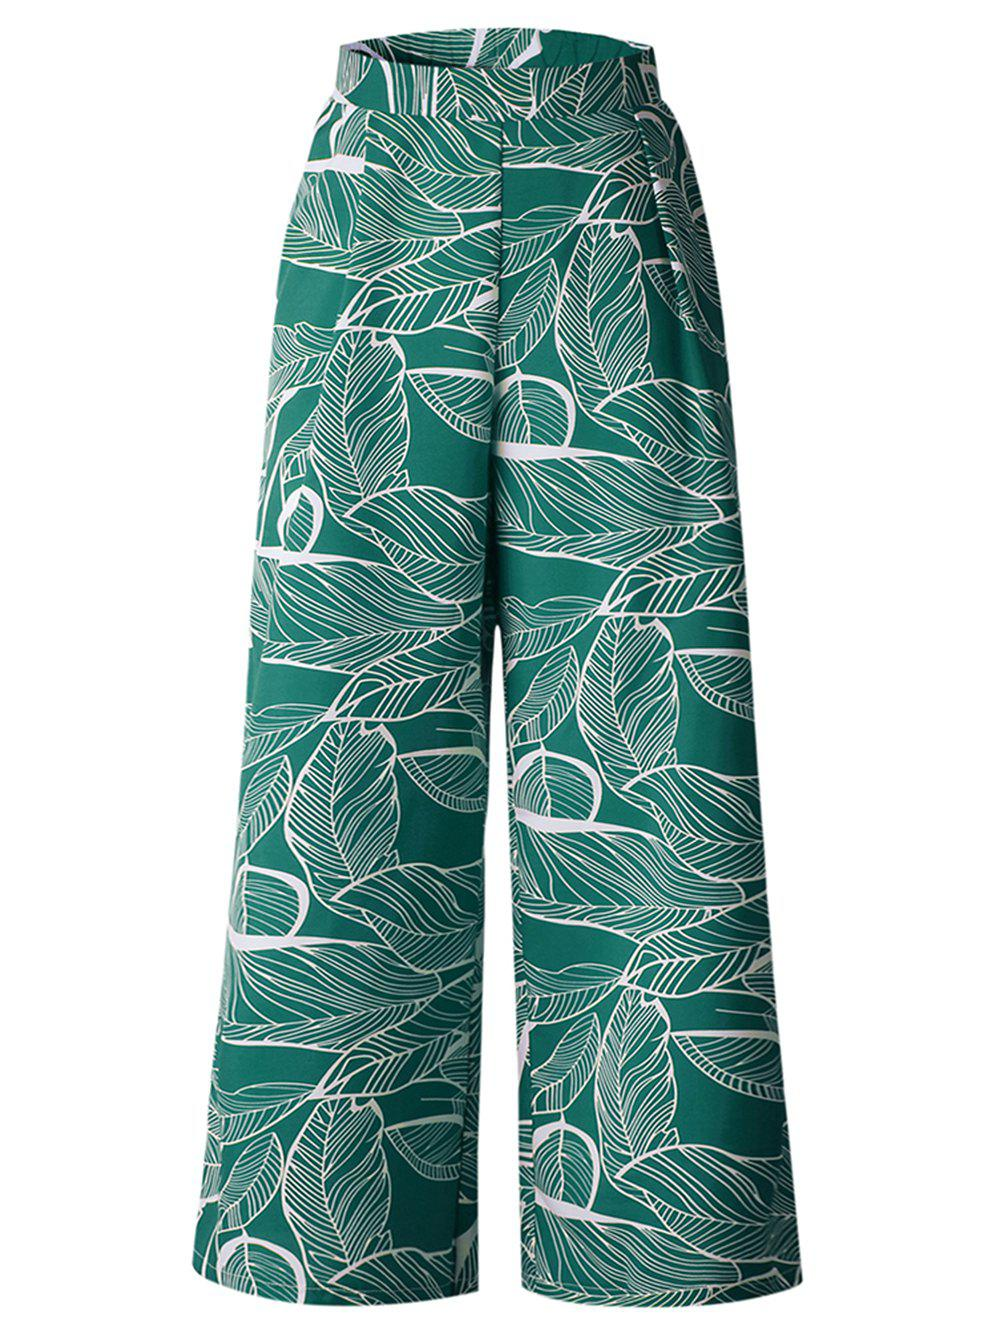 Latest Womens Casual Floral Print High Waist Wide Leg Long Palazzo Pants with Pockets